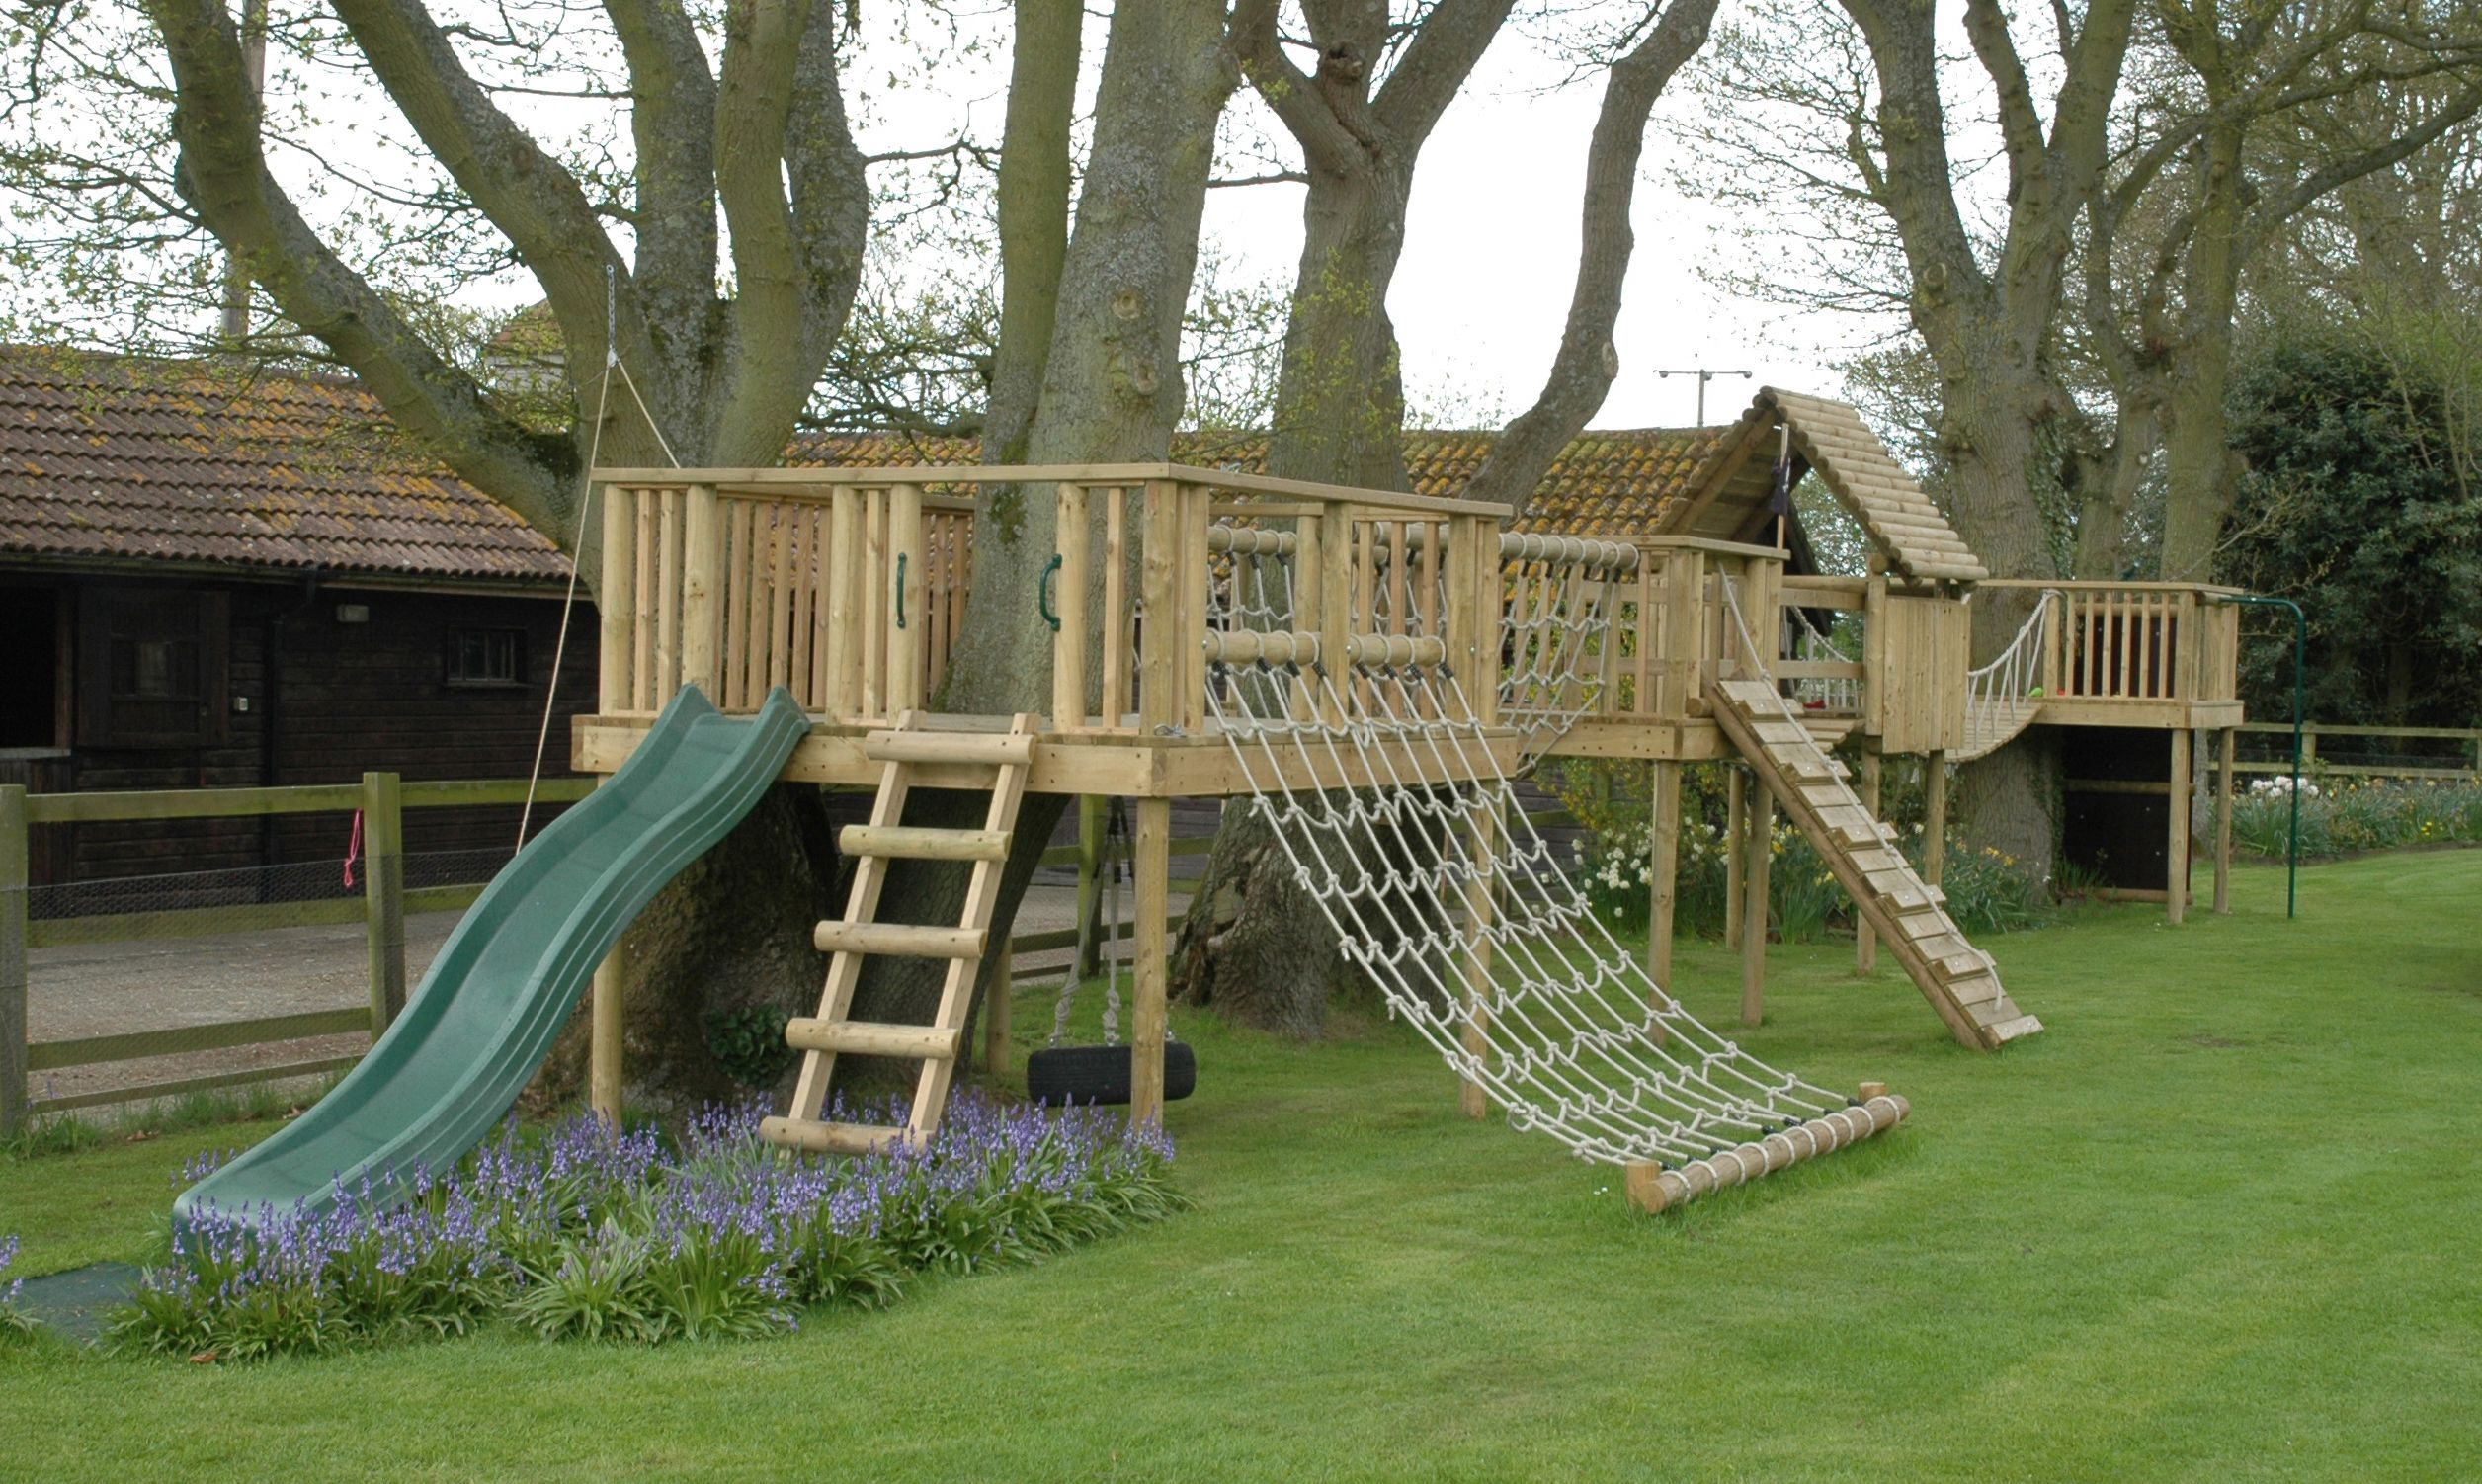 Diy Outdoor Fort With Slide Bespoke Designed Play Structure Built Round Trees